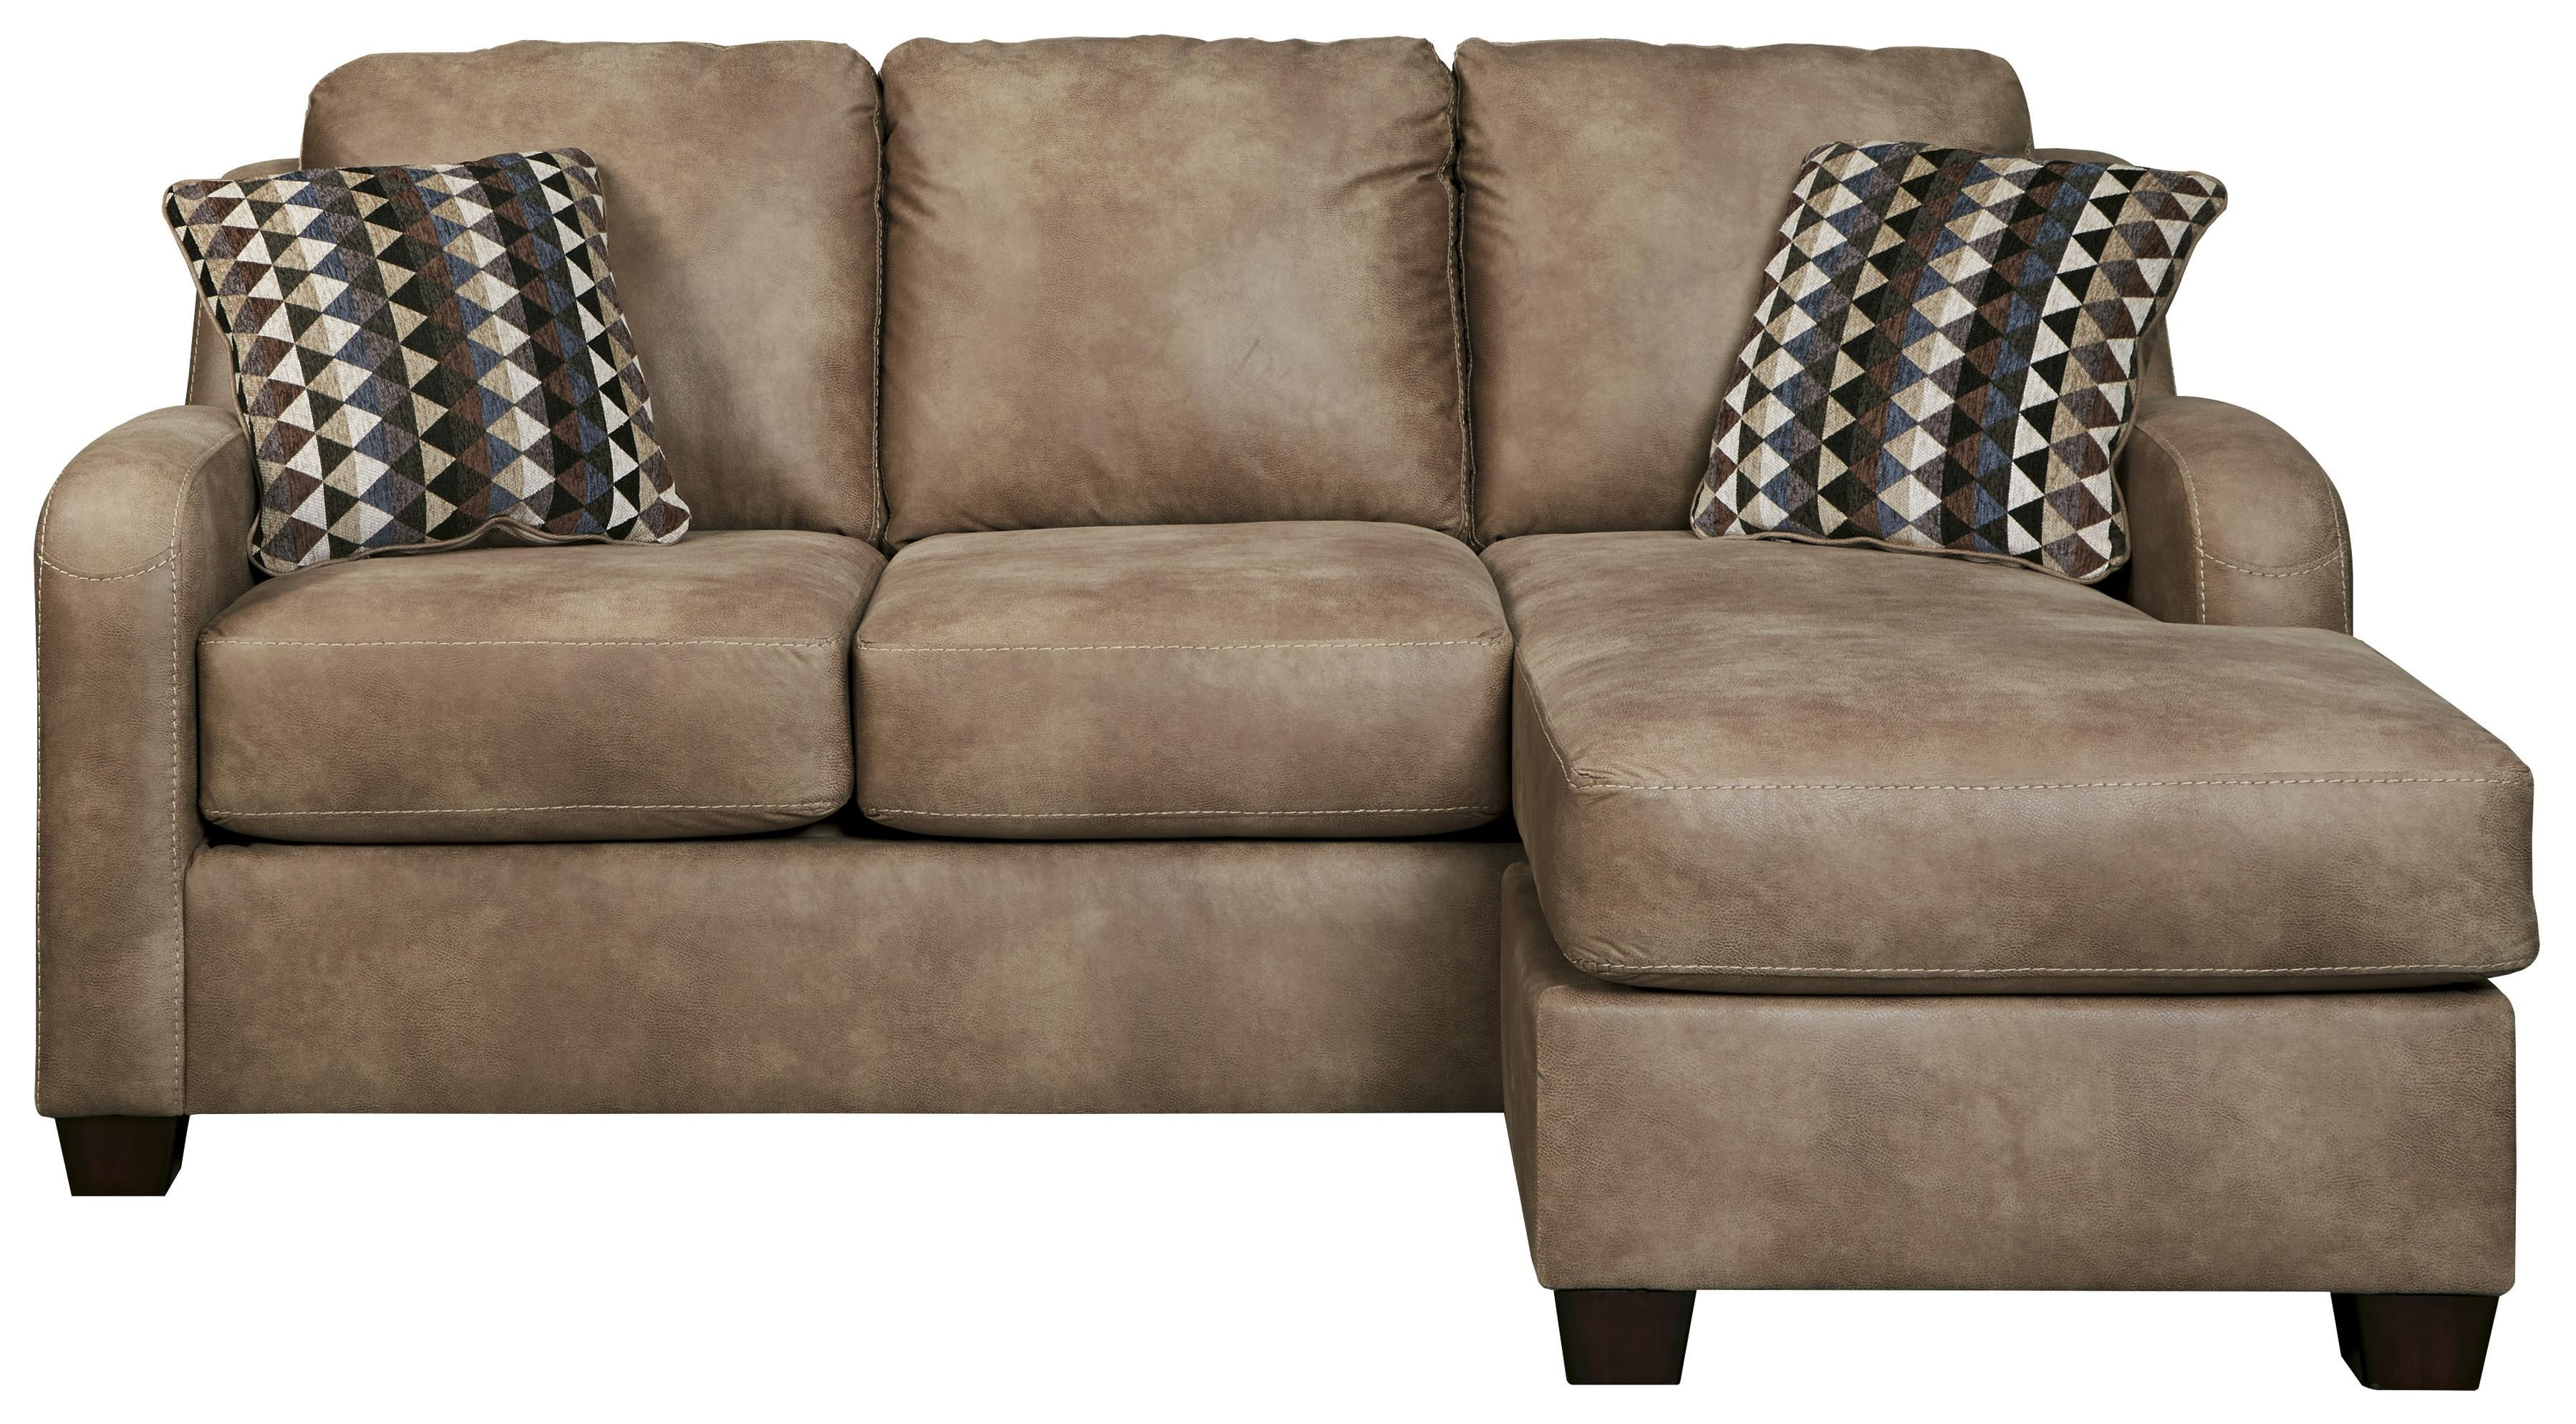 Benchcraft Alturo Contemporary Faux Leather Sofa Chaise – Dunk Within Benchcraft Leather Sofas (View 4 of 20)